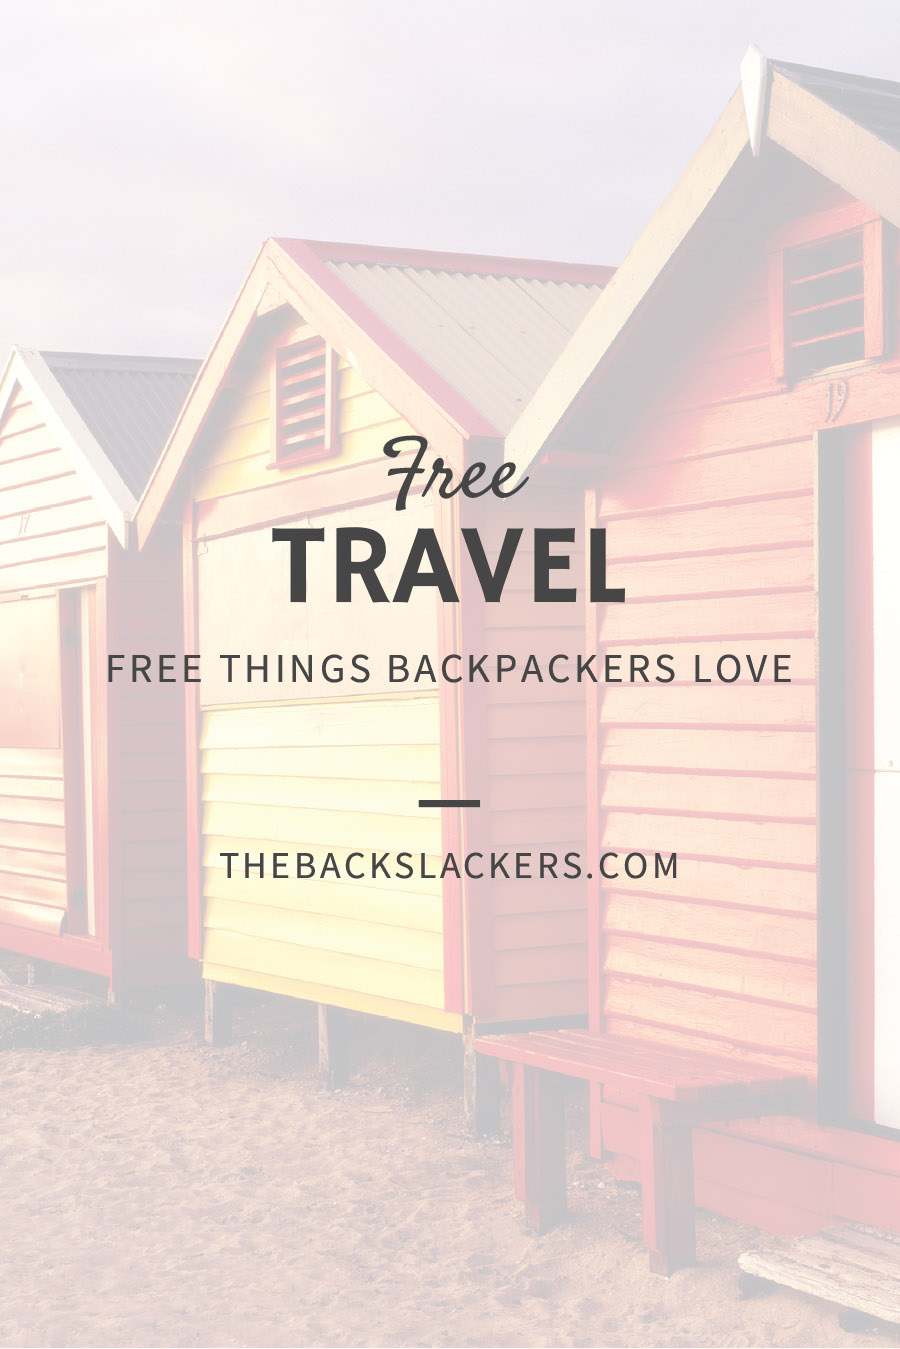 Free Things Backpackers Love - FREE TRAVEL